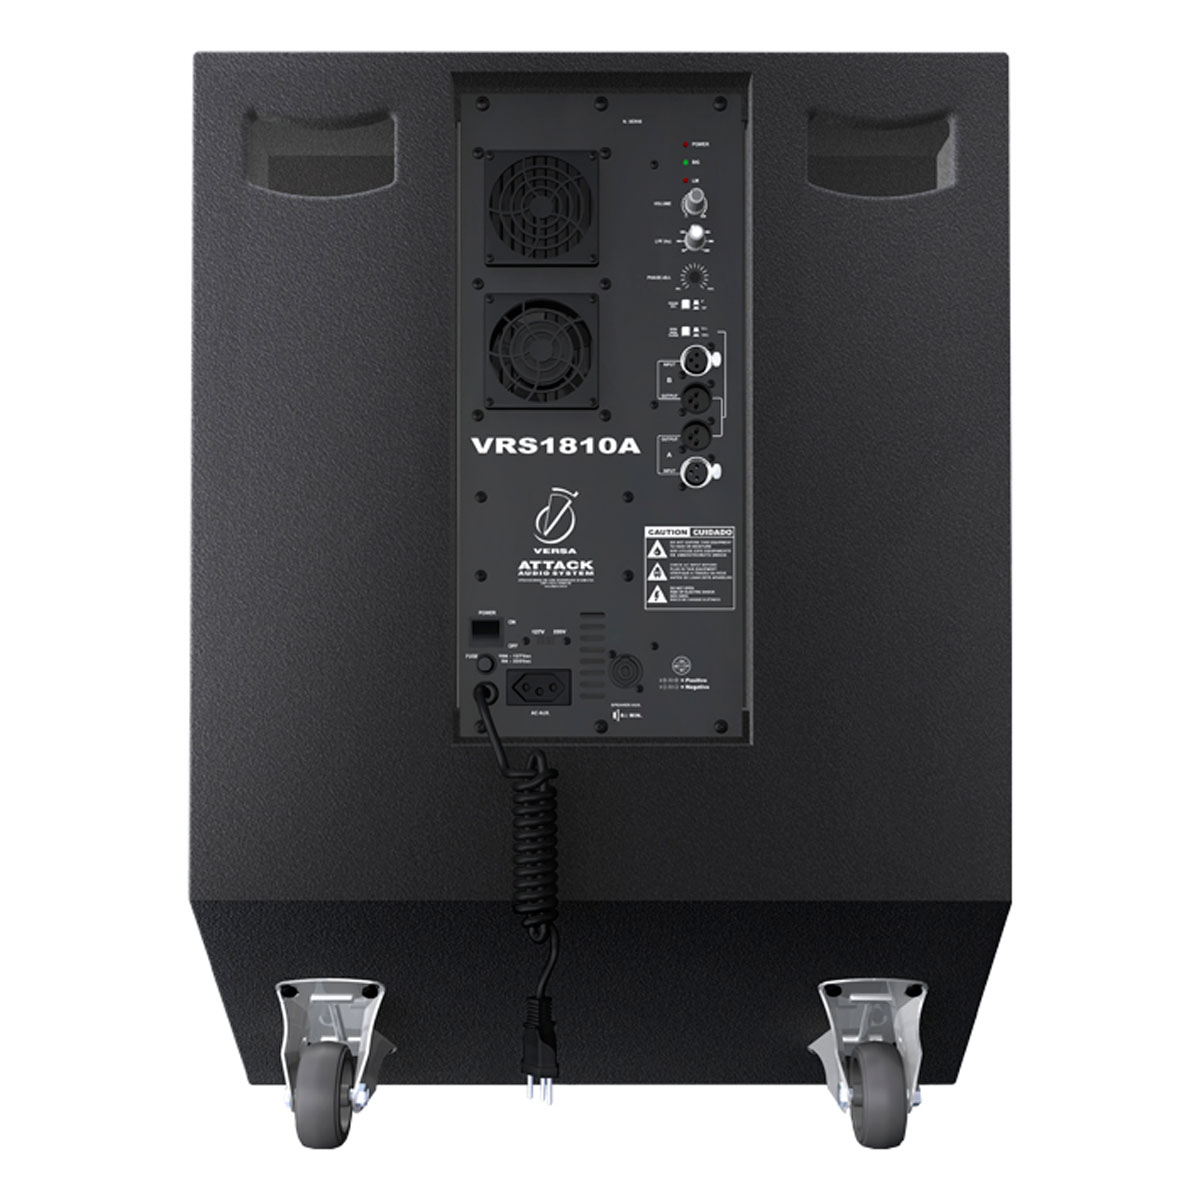 VRS1810A - Subwoofer Ativo 1000W VRS 1810 A - Attack